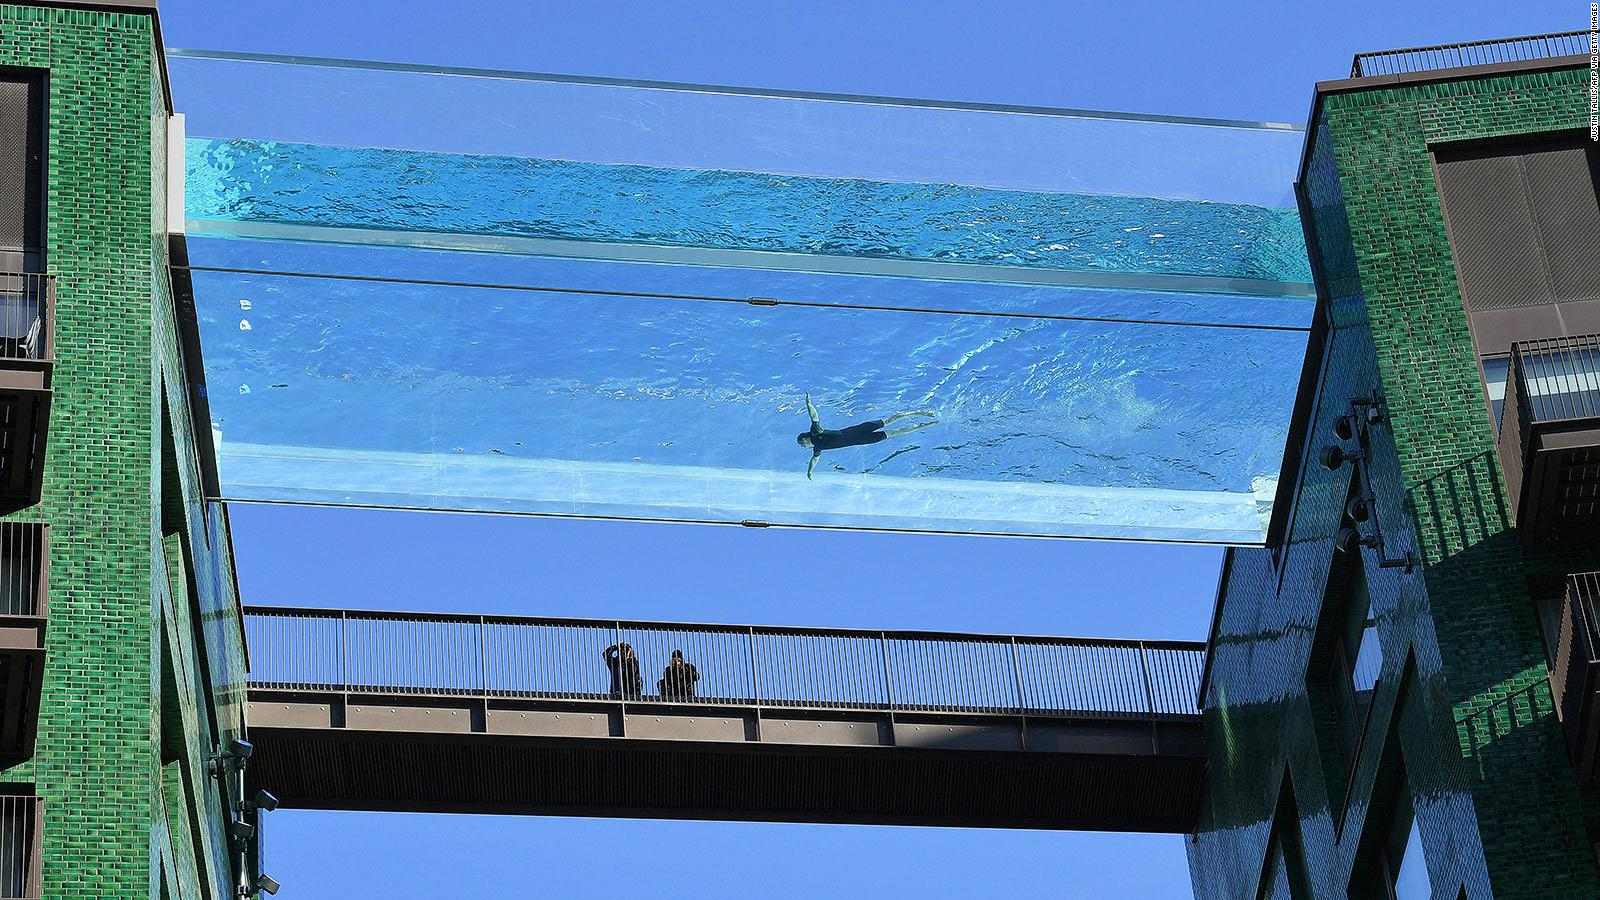 Worlds First Floating Sky Pool in London - London Airport Transfers